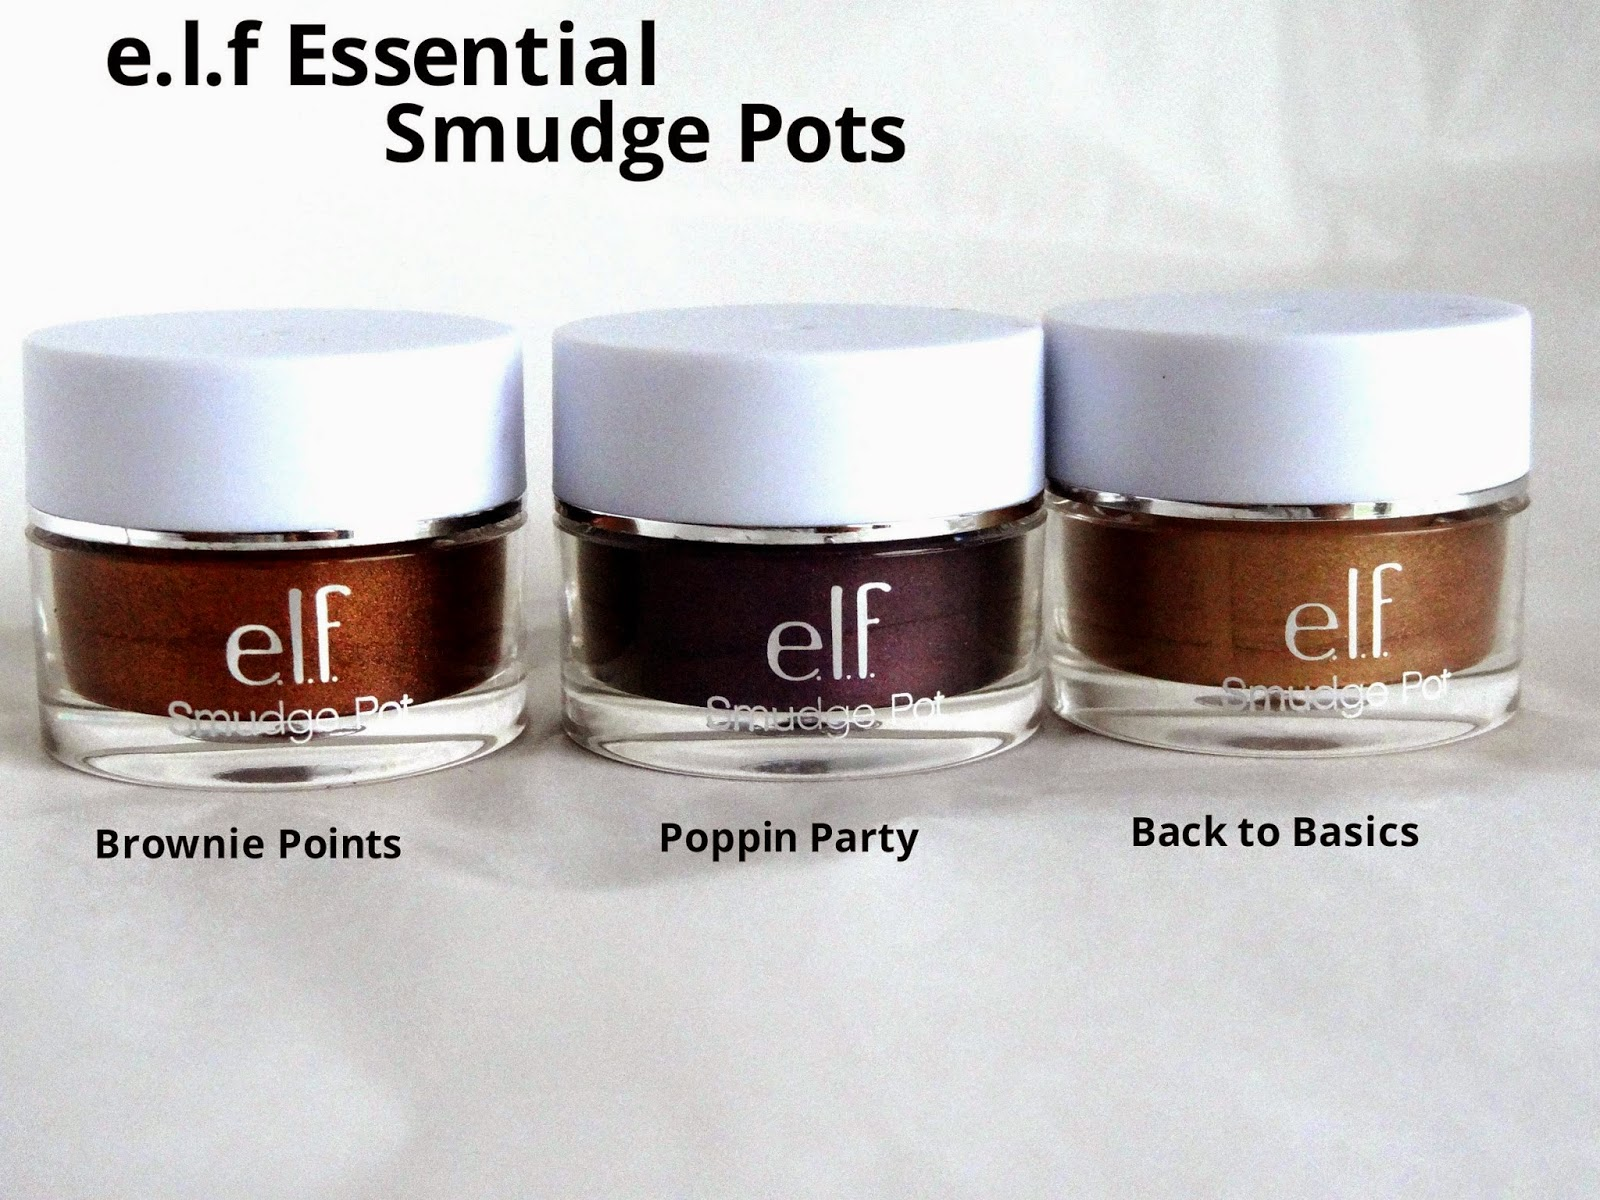 e.l.f Essential Smudge Pots in Brownie Points, Poppin Party & Back to Basics| Review and Swatches